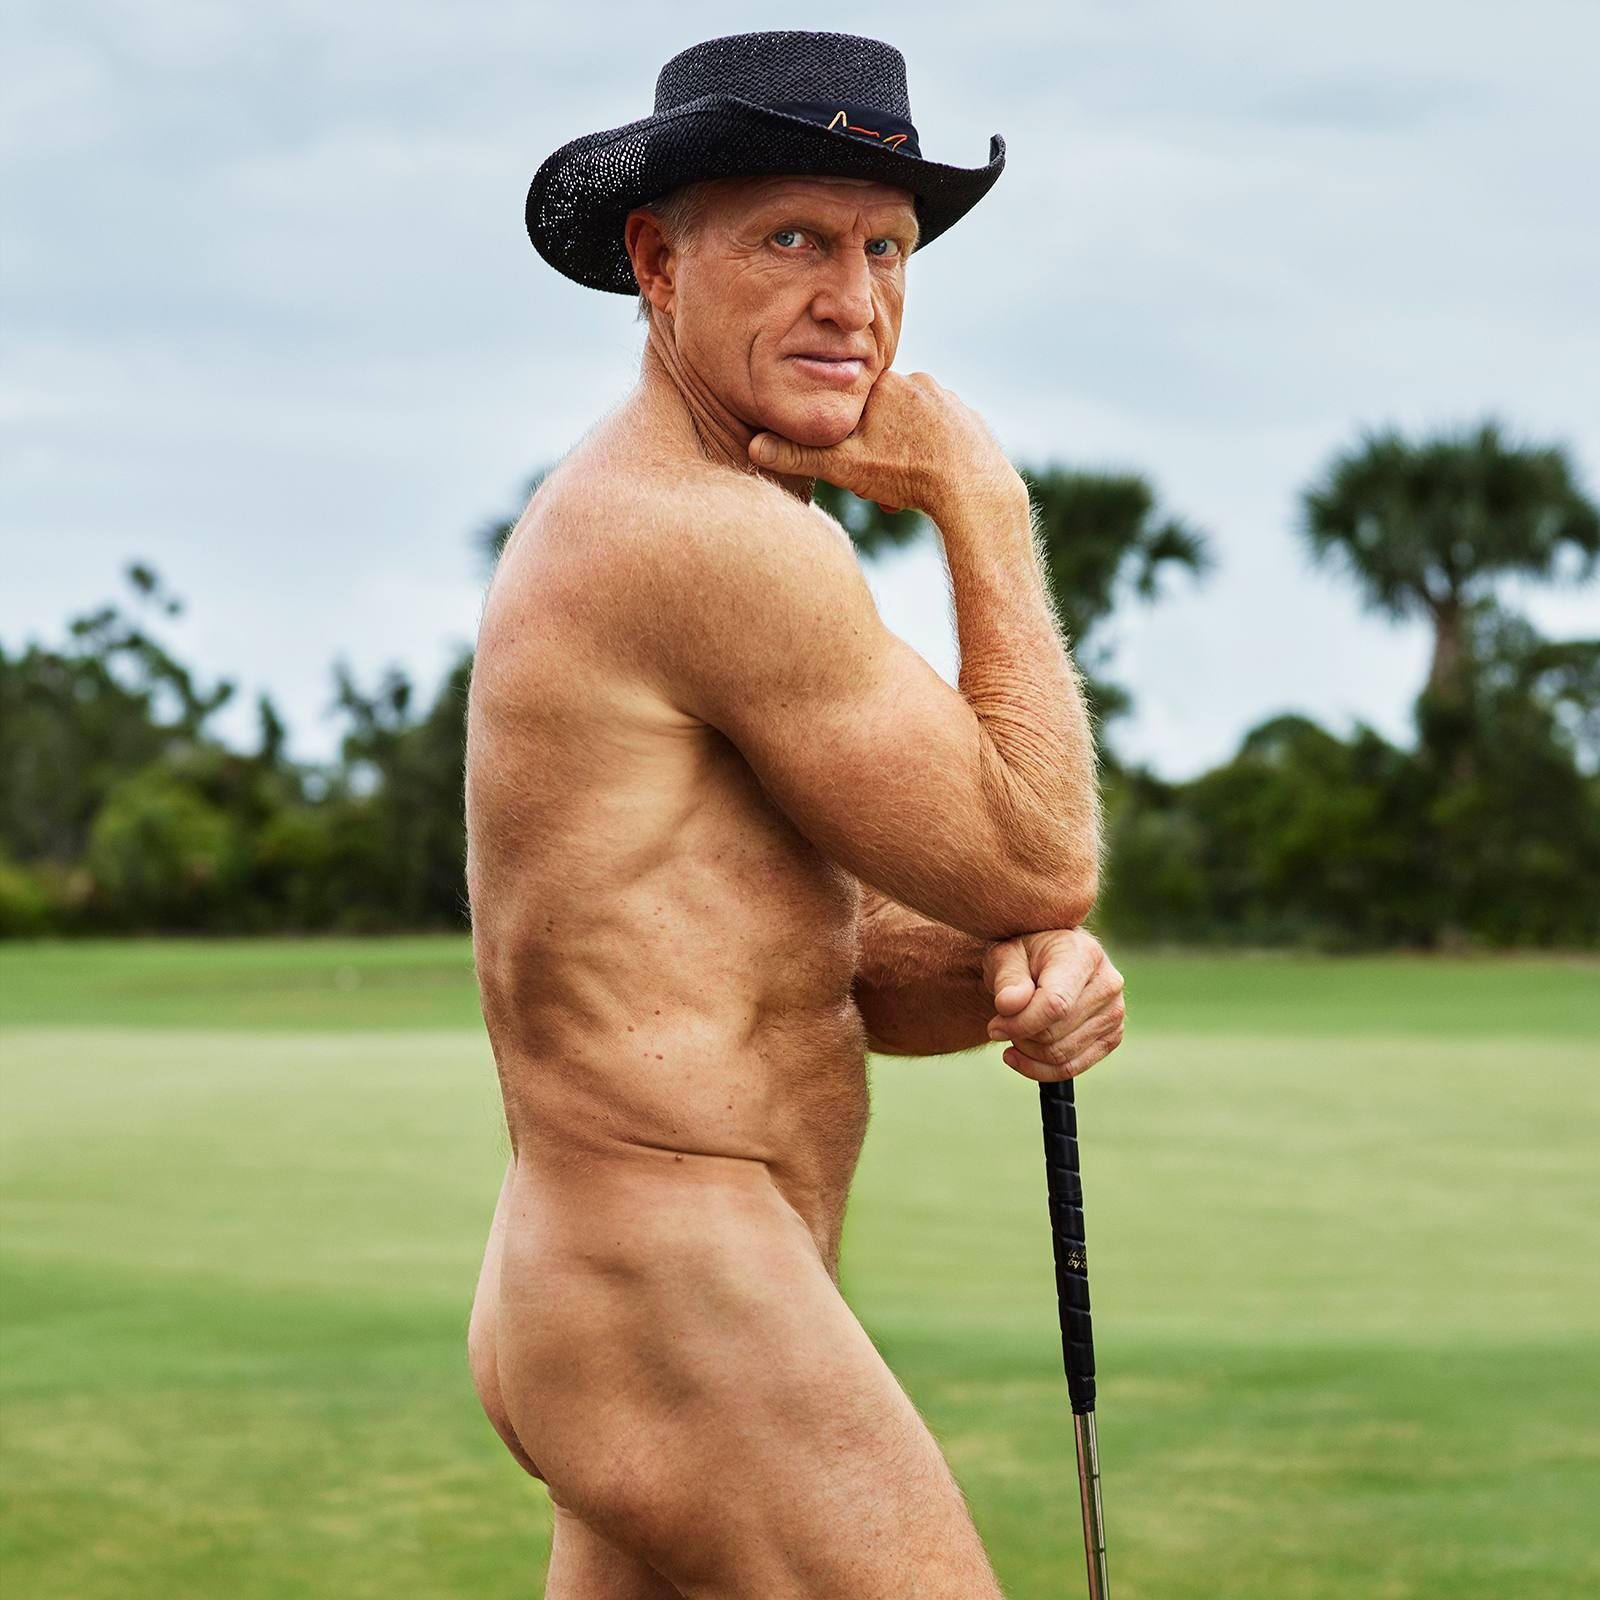 Greg Norman stripped off at the age of 63 for the ESPN Body Issue